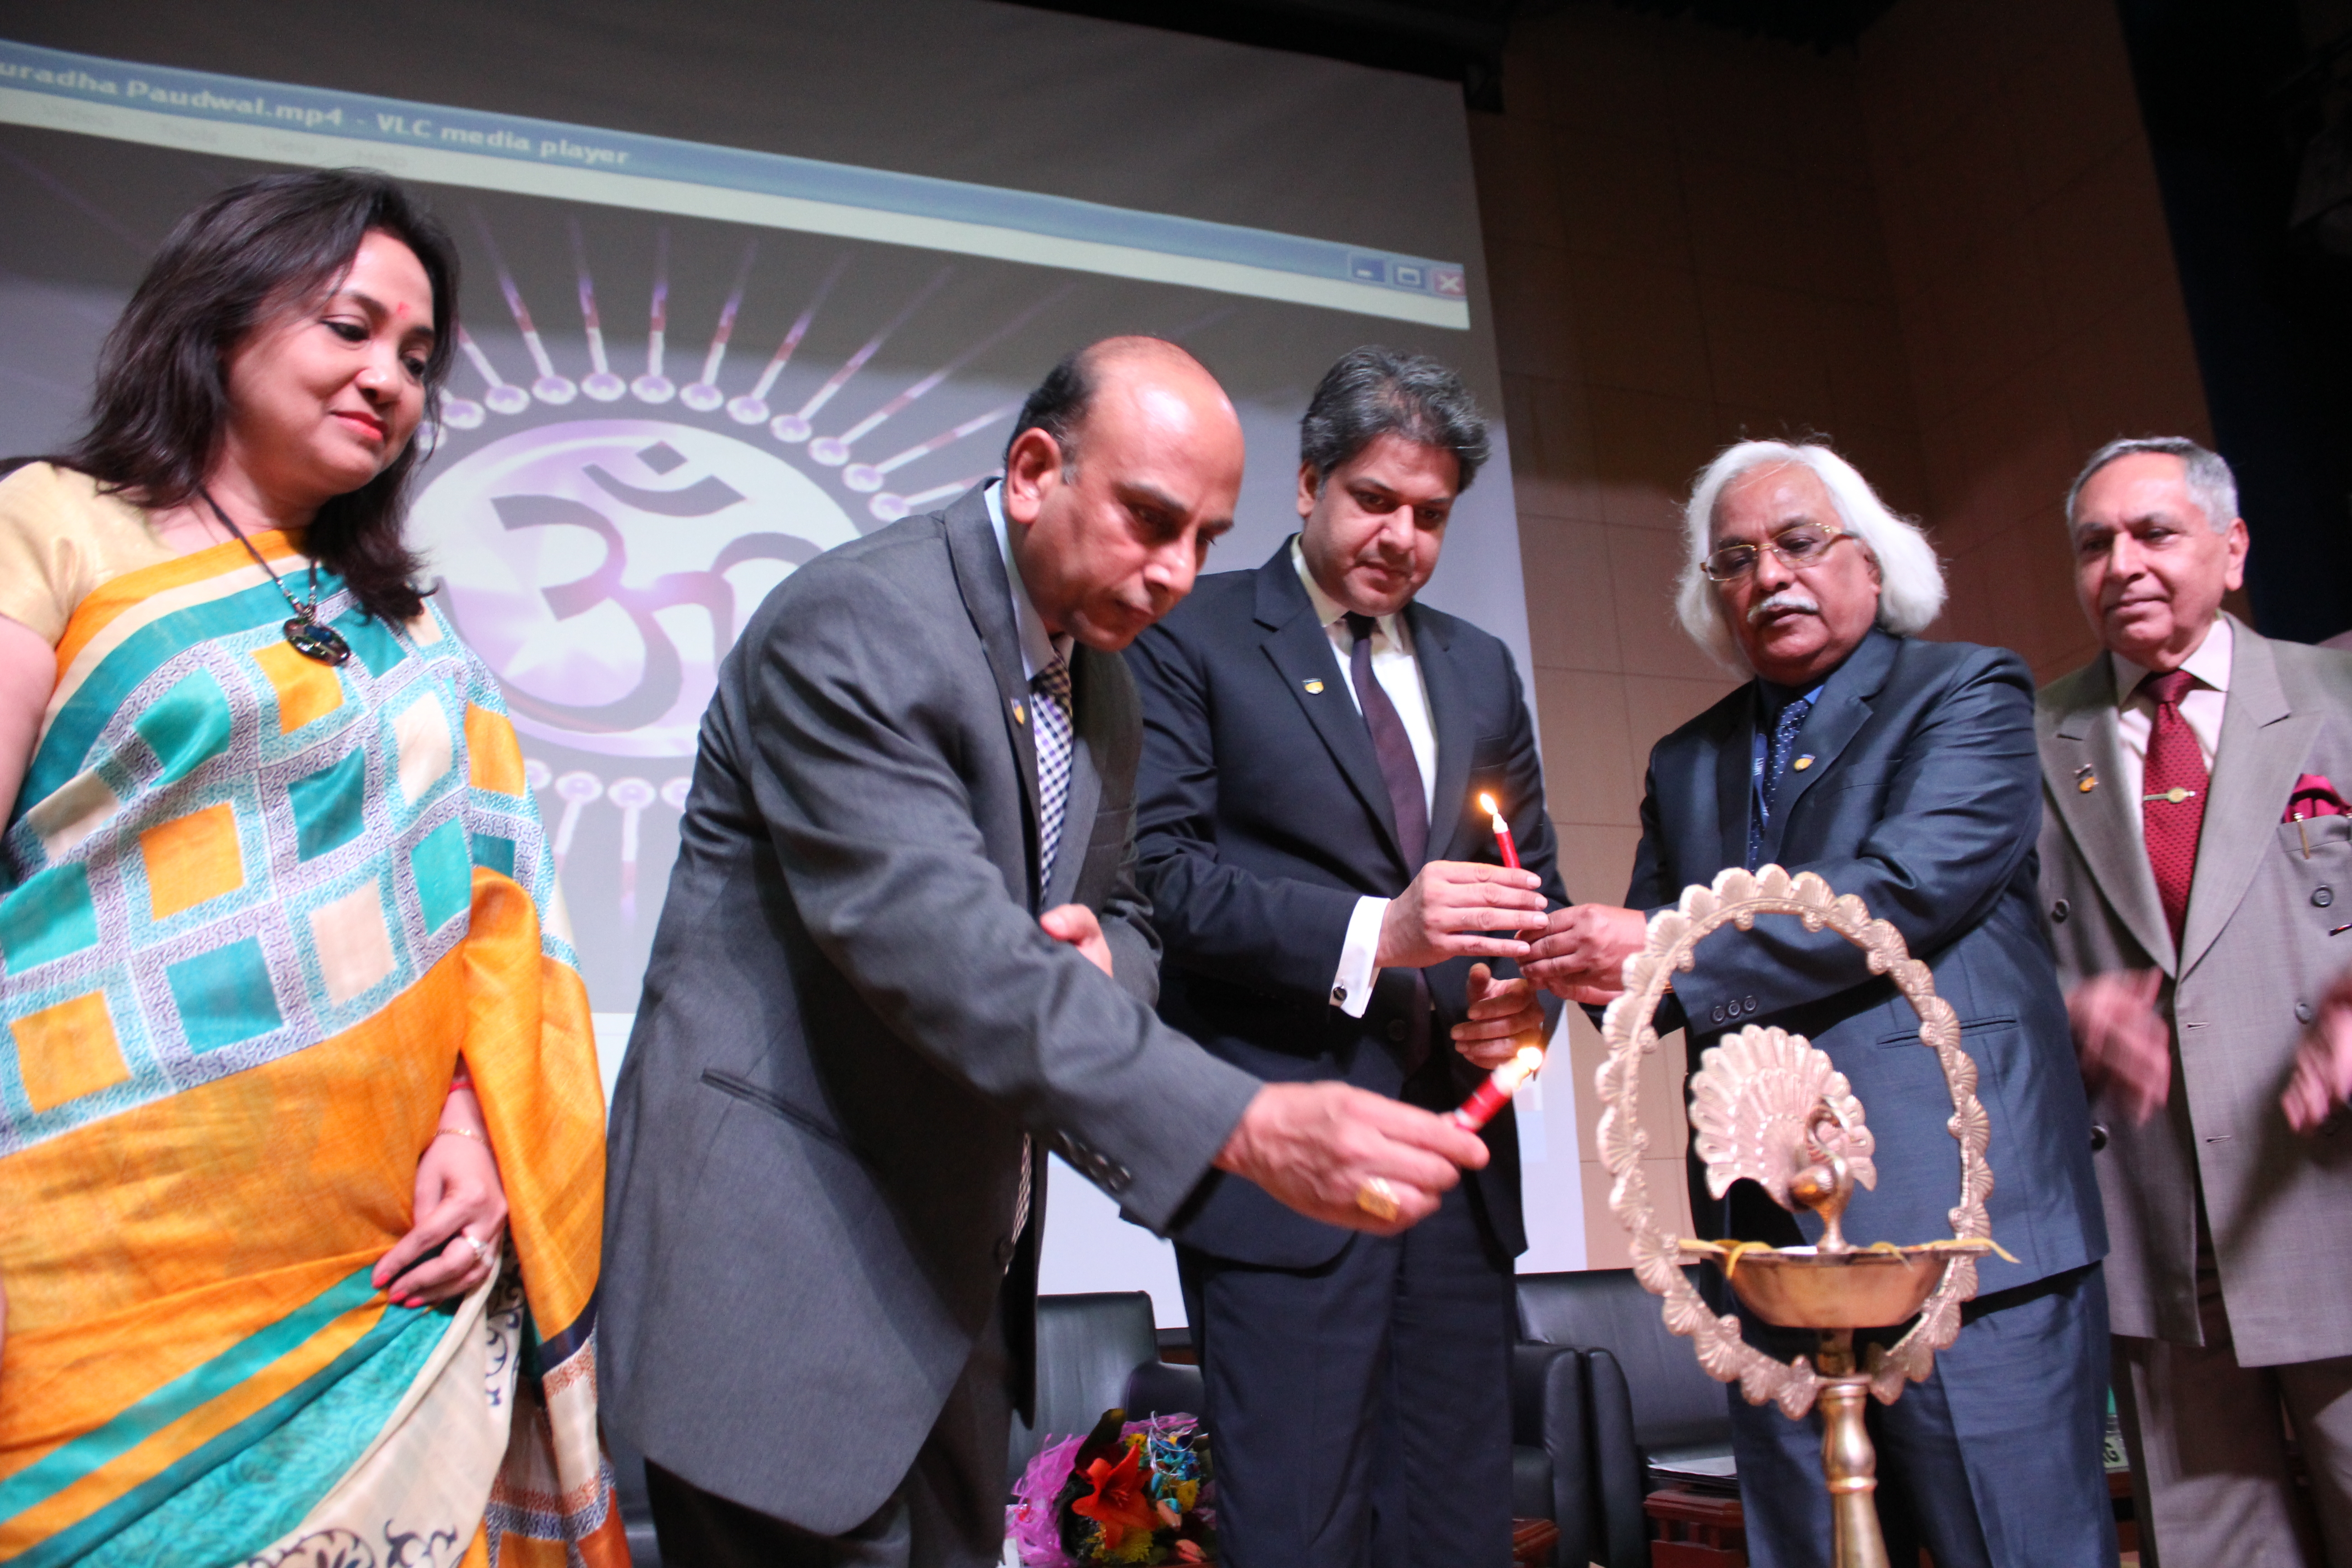 Dr. Nadaur Program Director NIEHS USA lamp lighting at Amity University Gurgaon